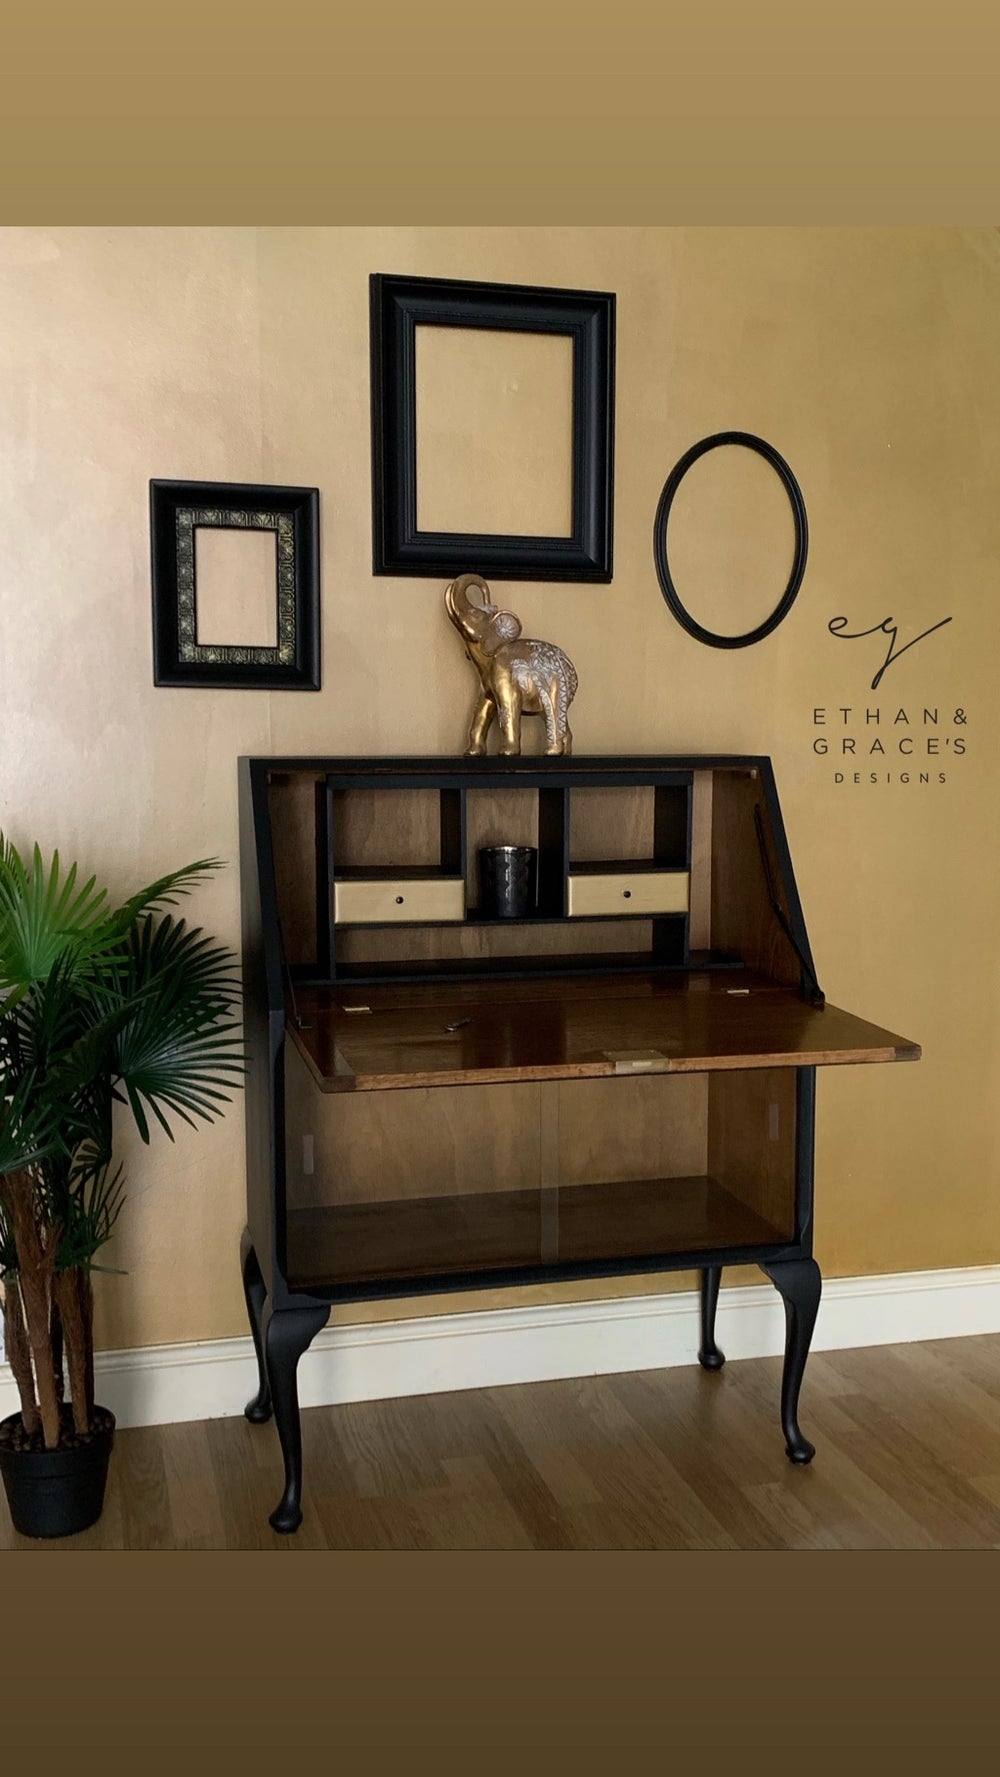 Image of Black wooden & gold bureau drinks cabinet